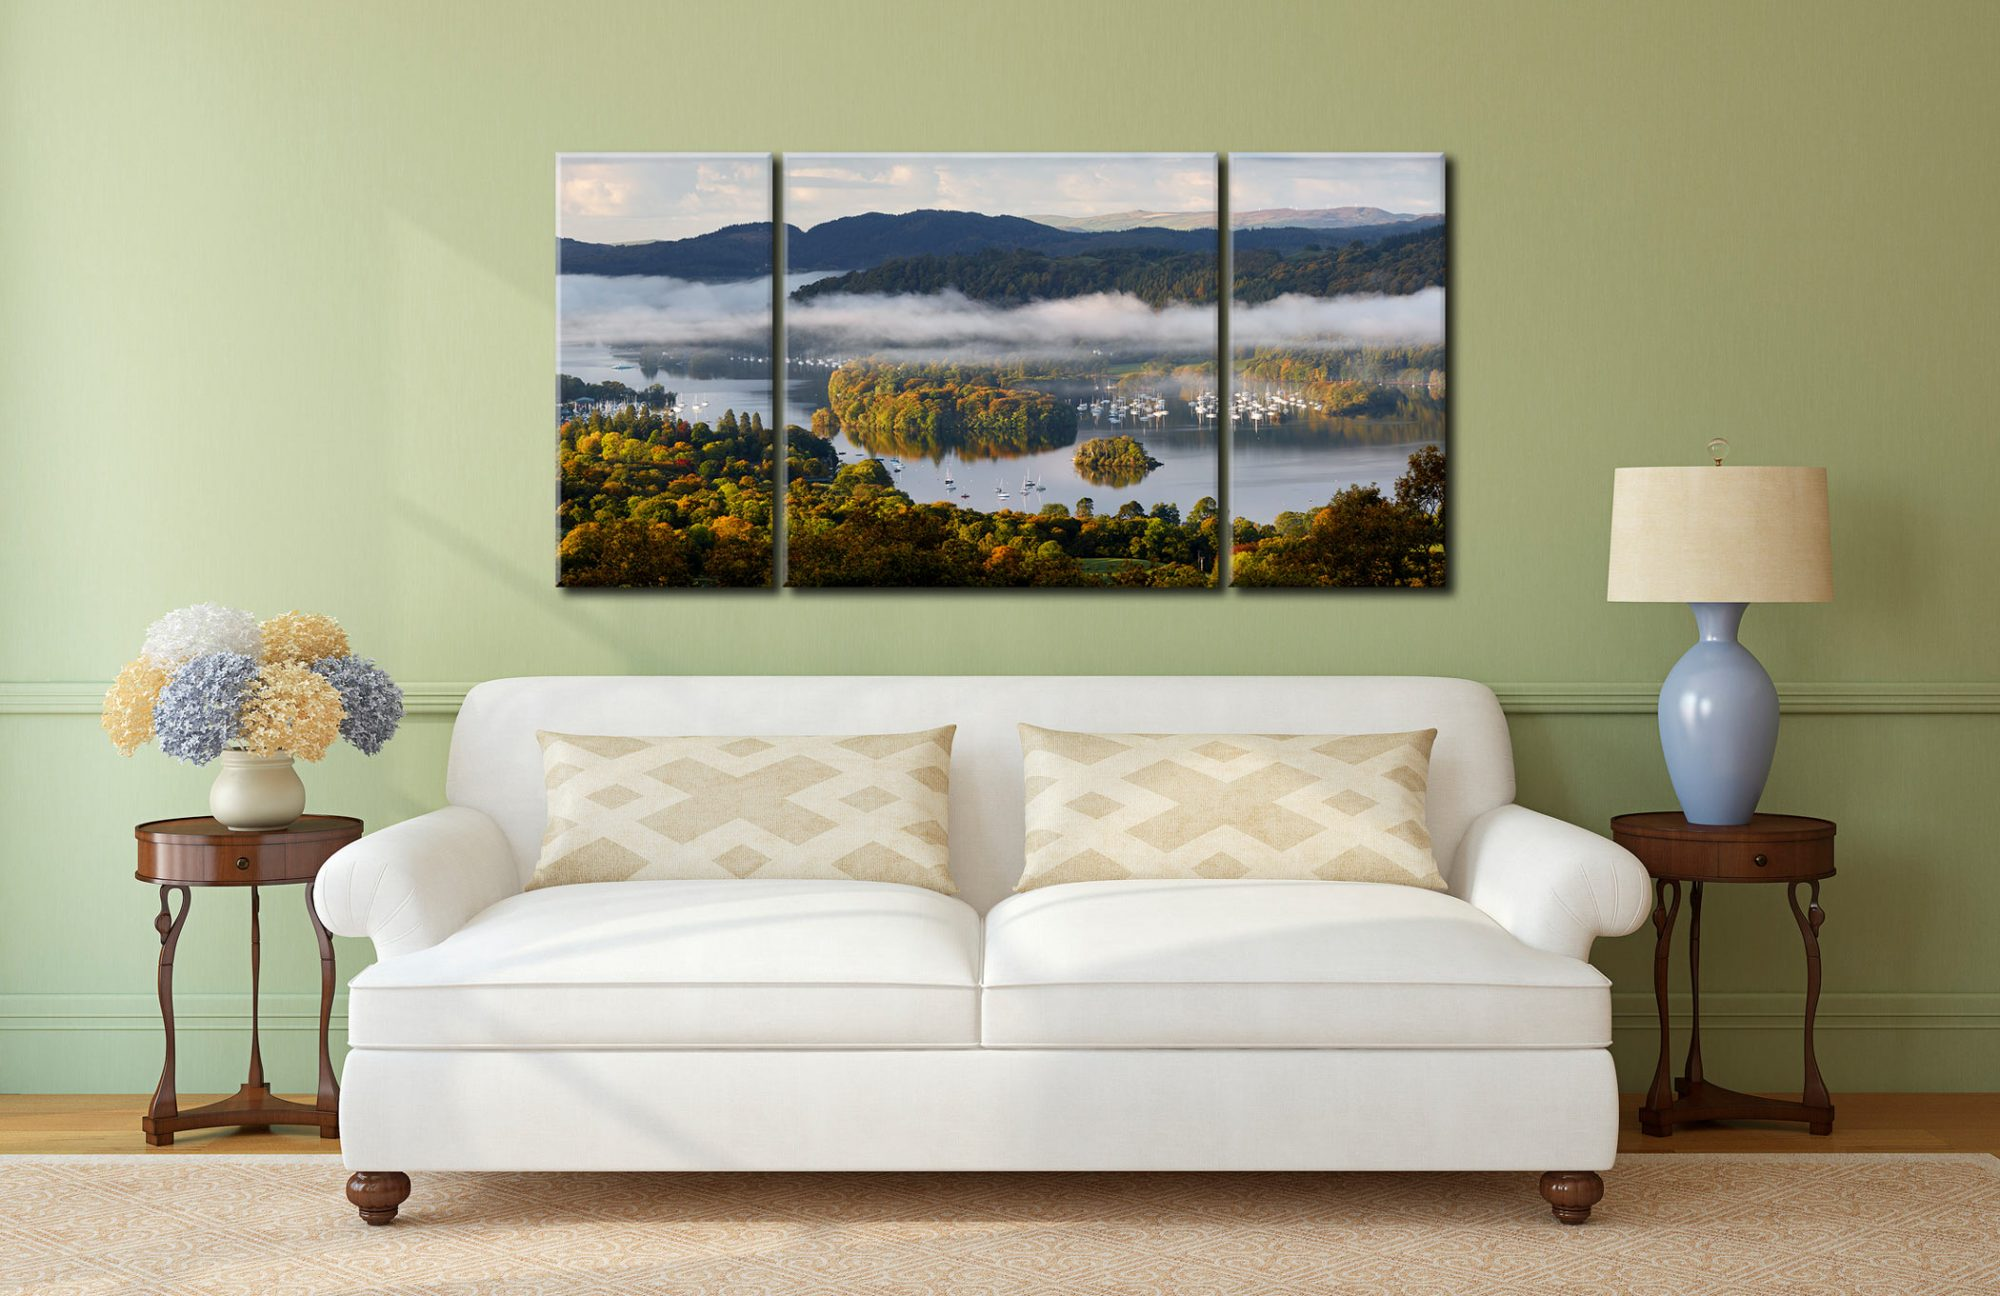 Windermere Morning Mists - 3 Panel Wide Centre Canvas on Wall